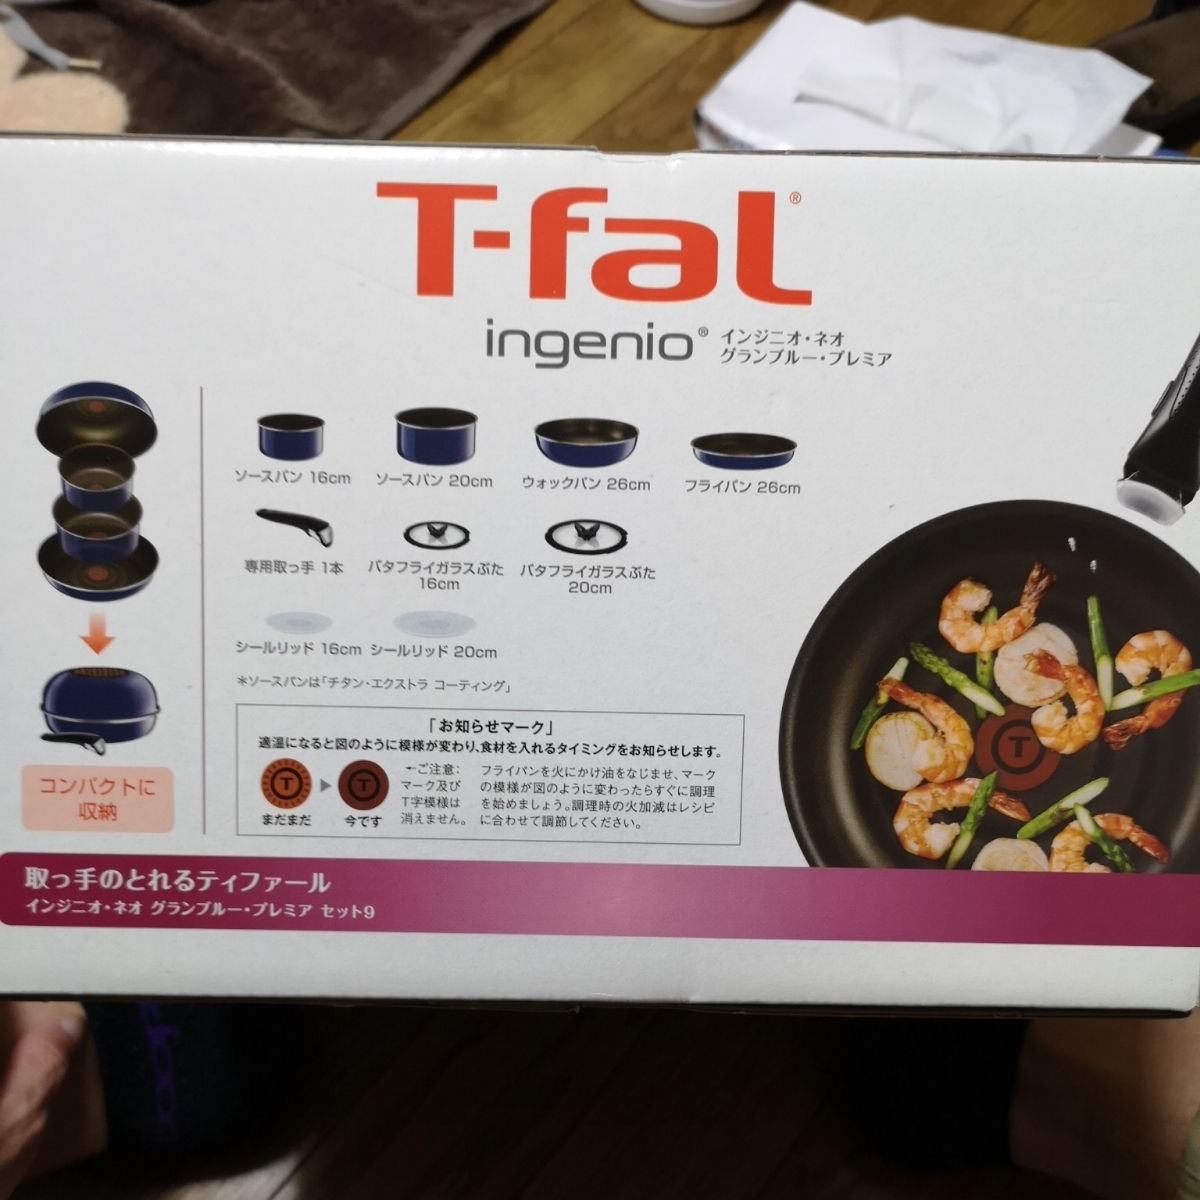 T-faL フライパン9点セット ひとり暮らし応援 ガス火 IH不可 新品未使用品 箱に傷小 持ち手+1本付き_画像3